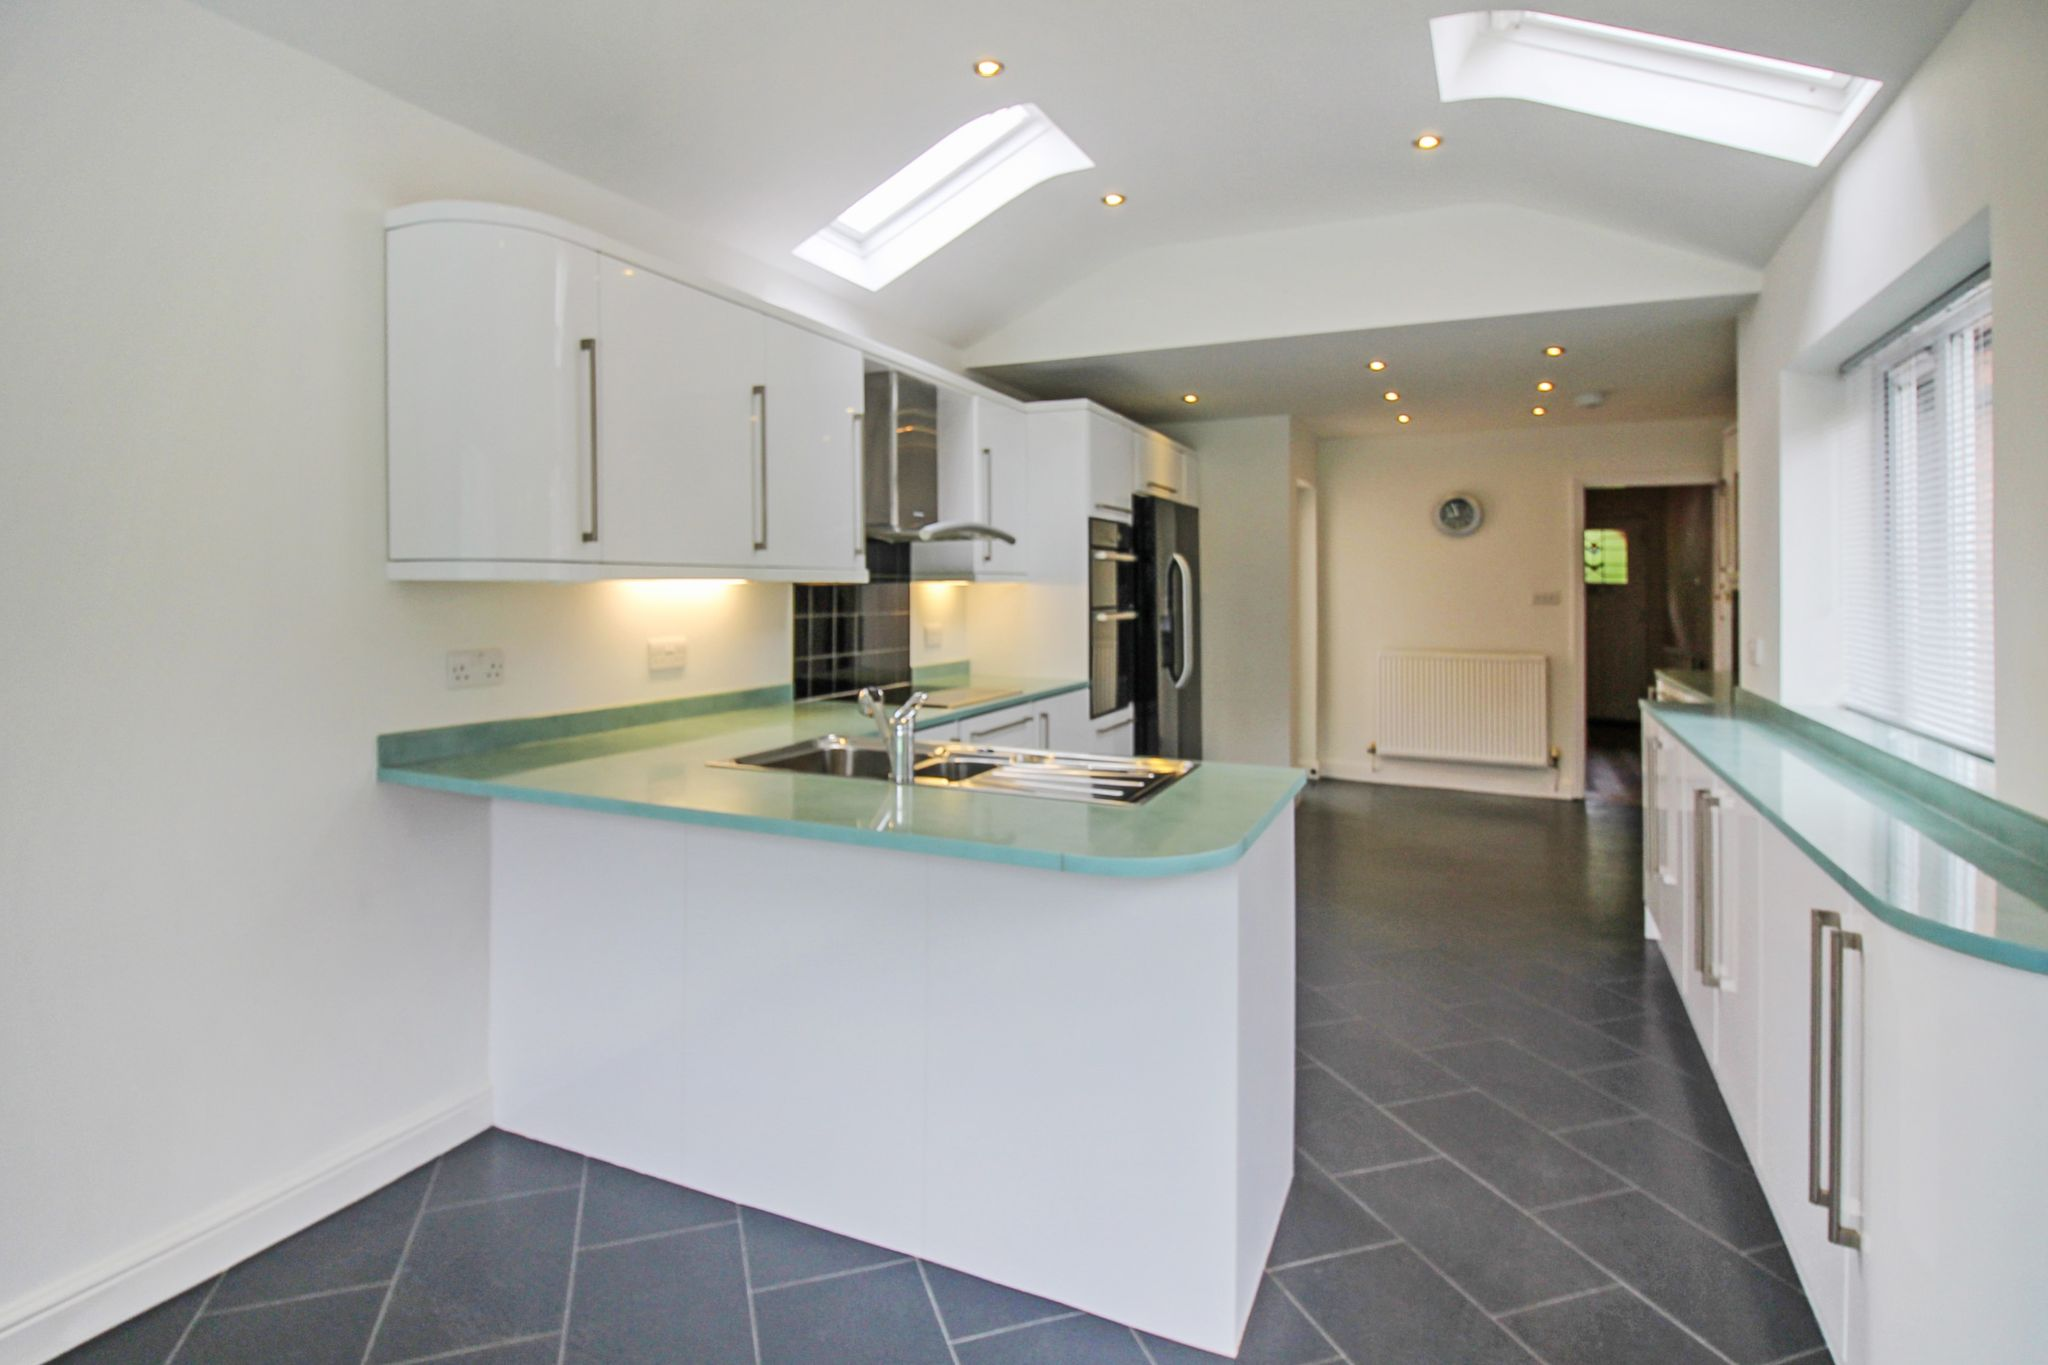 4 bedroom semi-detached house SSTC in Solihull - Photograph 3.